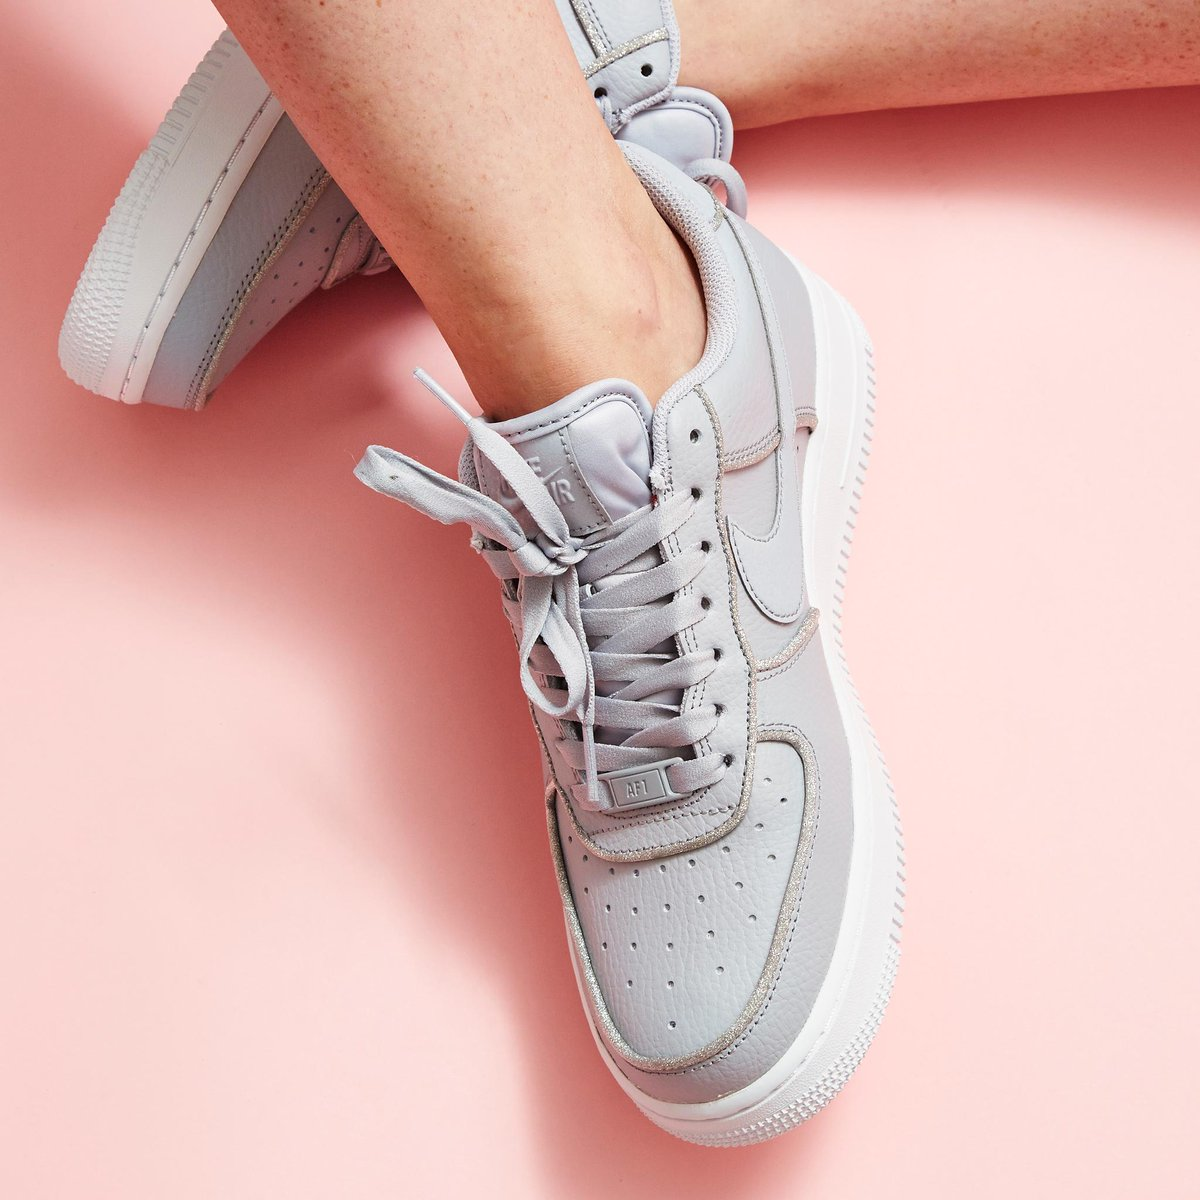 nike Air Force 1 07 Trainers especially